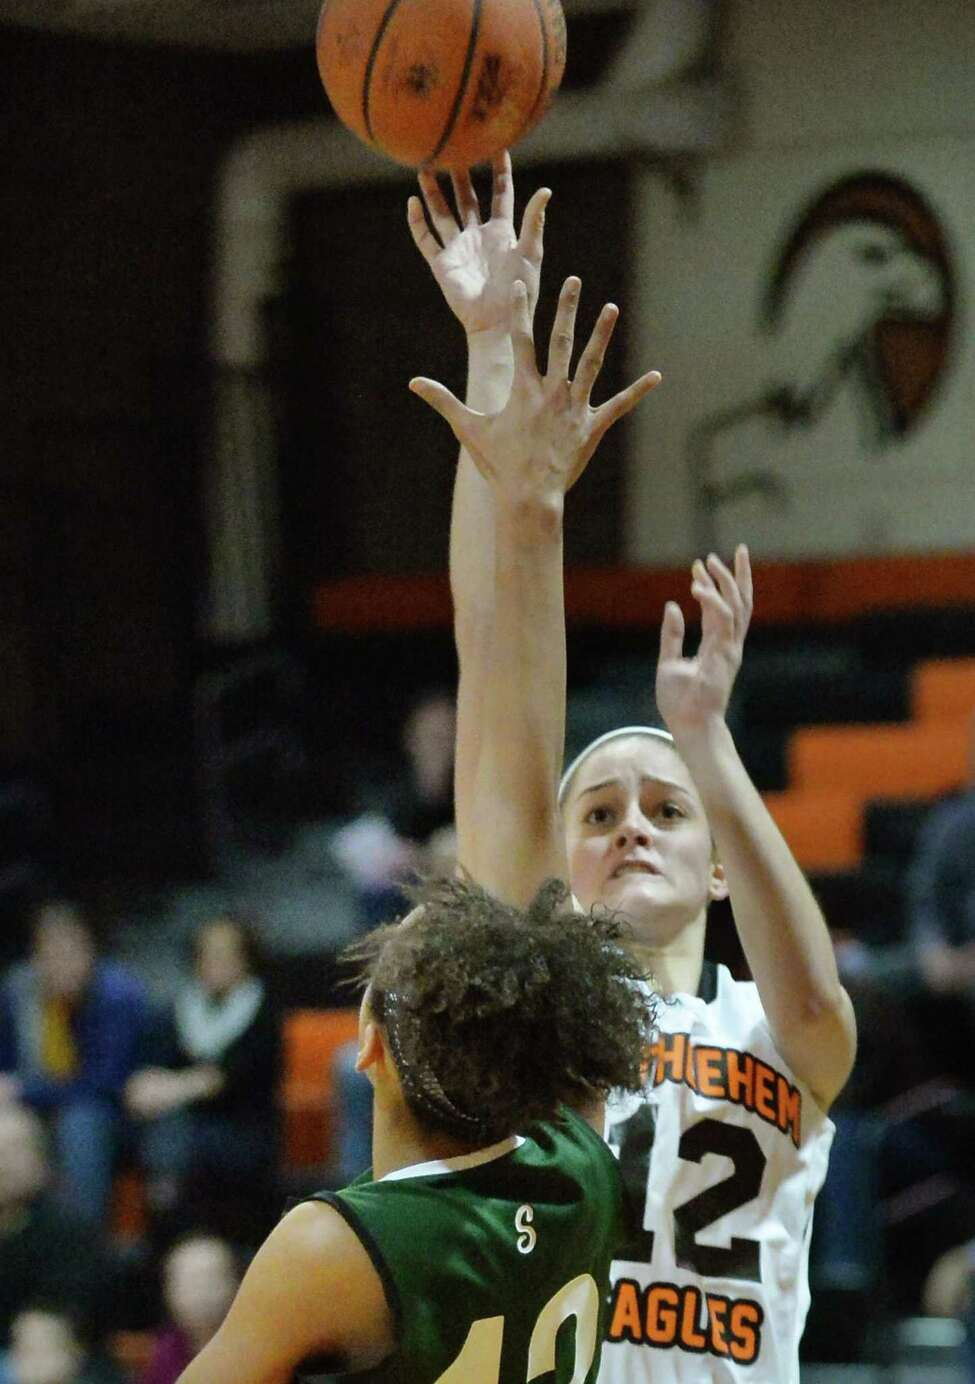 Bethlehem junior point guard Jenna Giacone takes a shot during Friday's game against Shenendehowa High Dec. 12, 2014, in Delmar, NY. (John Carl D'Annibale / Times Union)